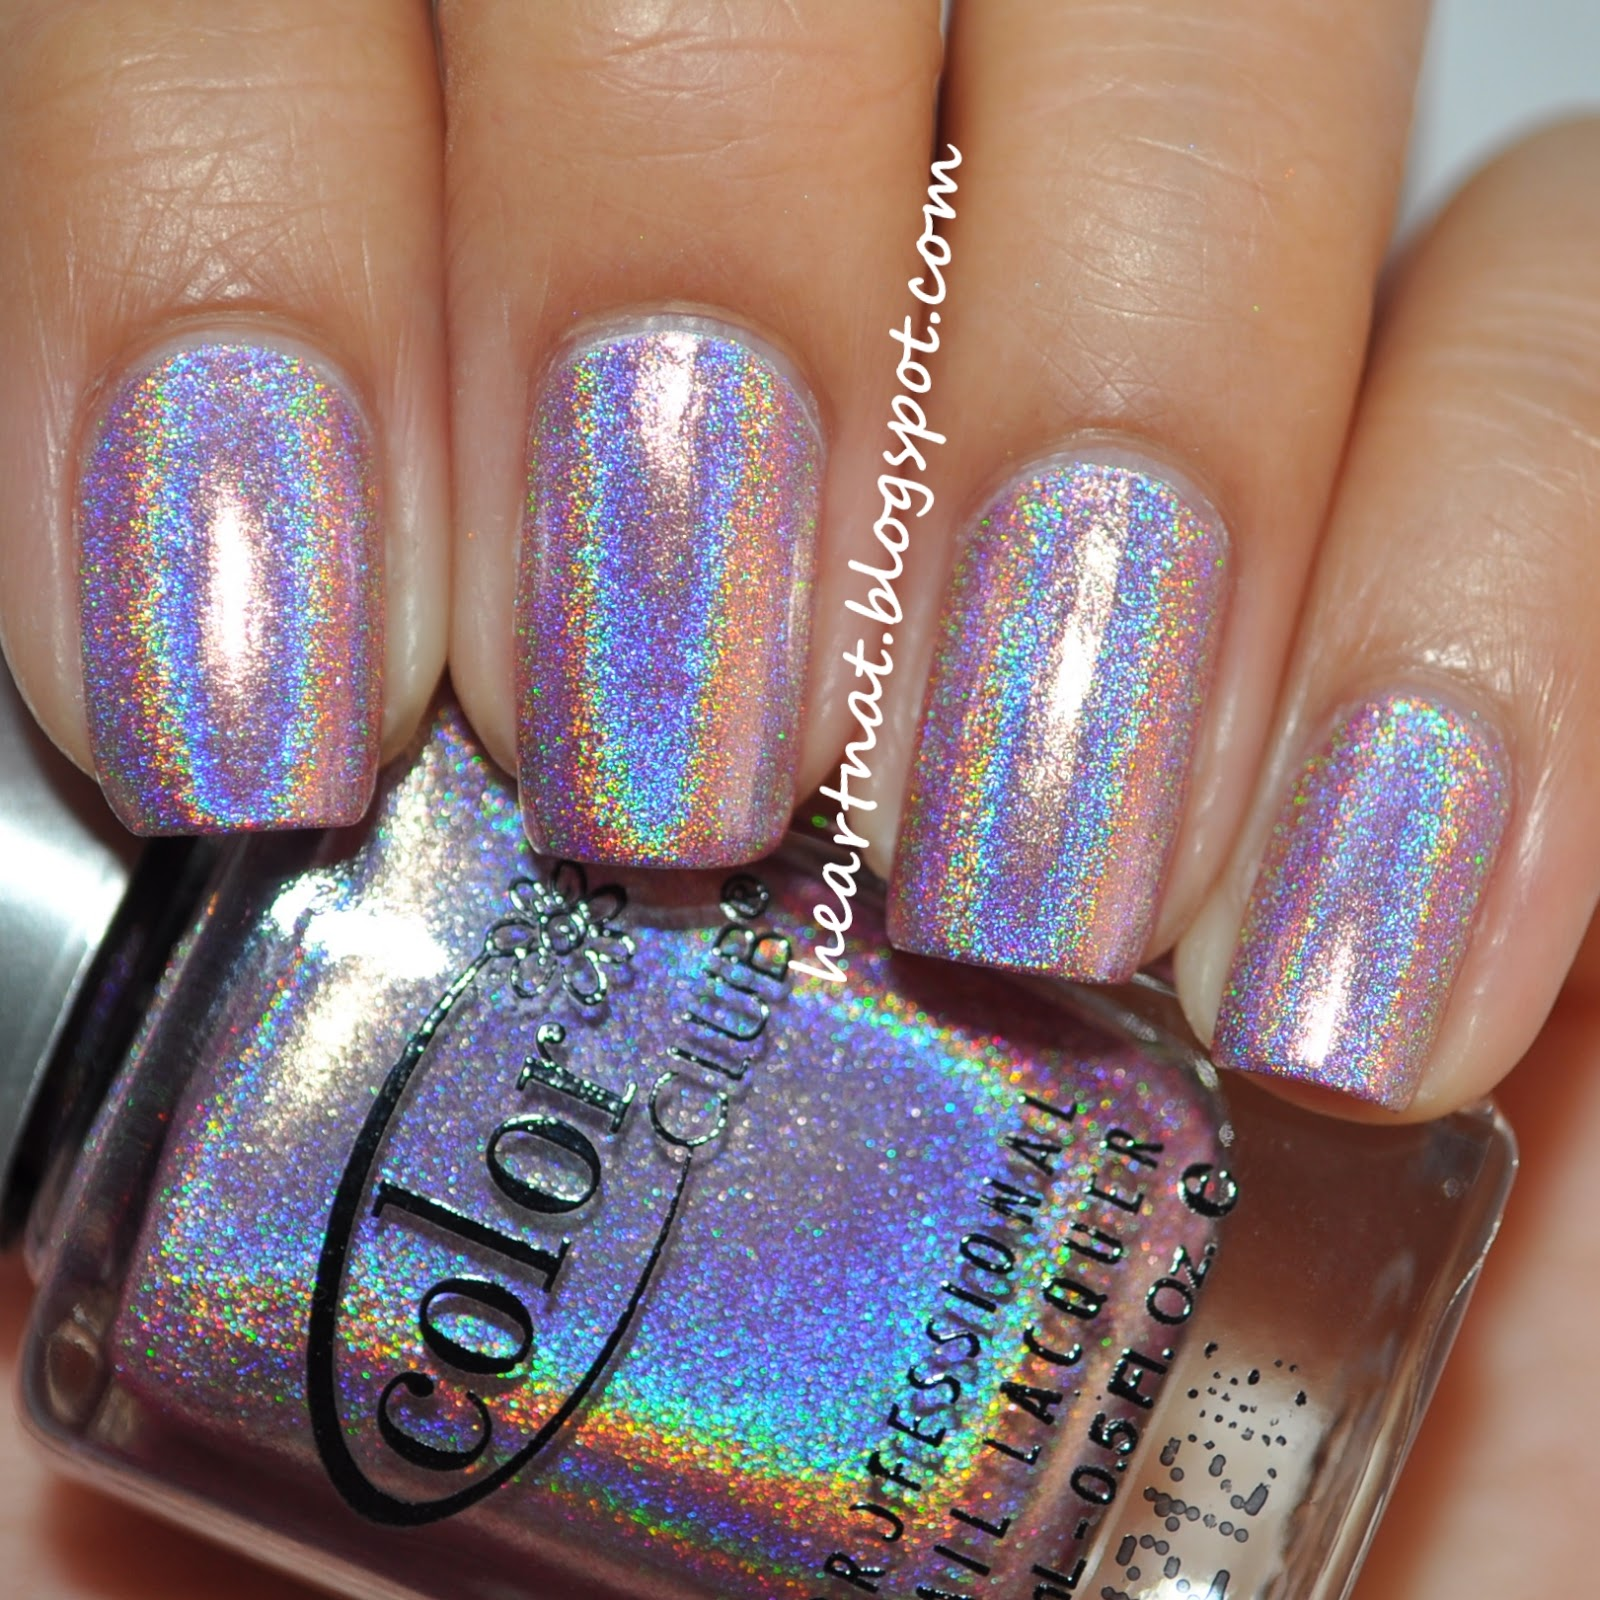 Color Club Holographic Nail Polish Swatches: Heartnat: Color Club Halo Hues Collection Swatches